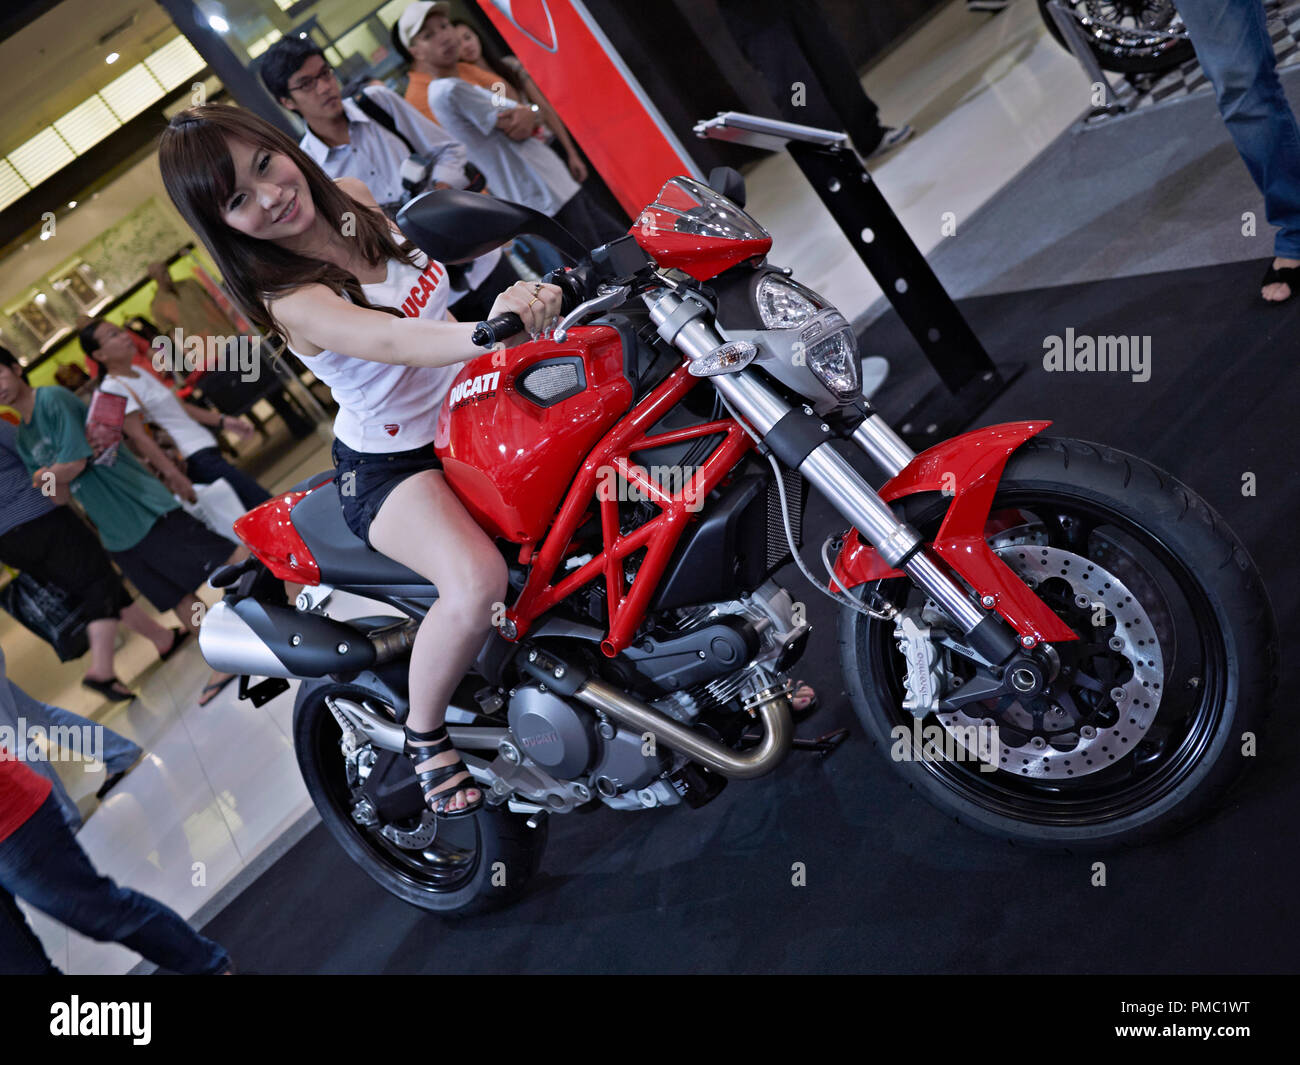 Ducati motorcycle and female model at the annual Bangkok motorcycle show. Thailand S. E. Asia - Stock Image